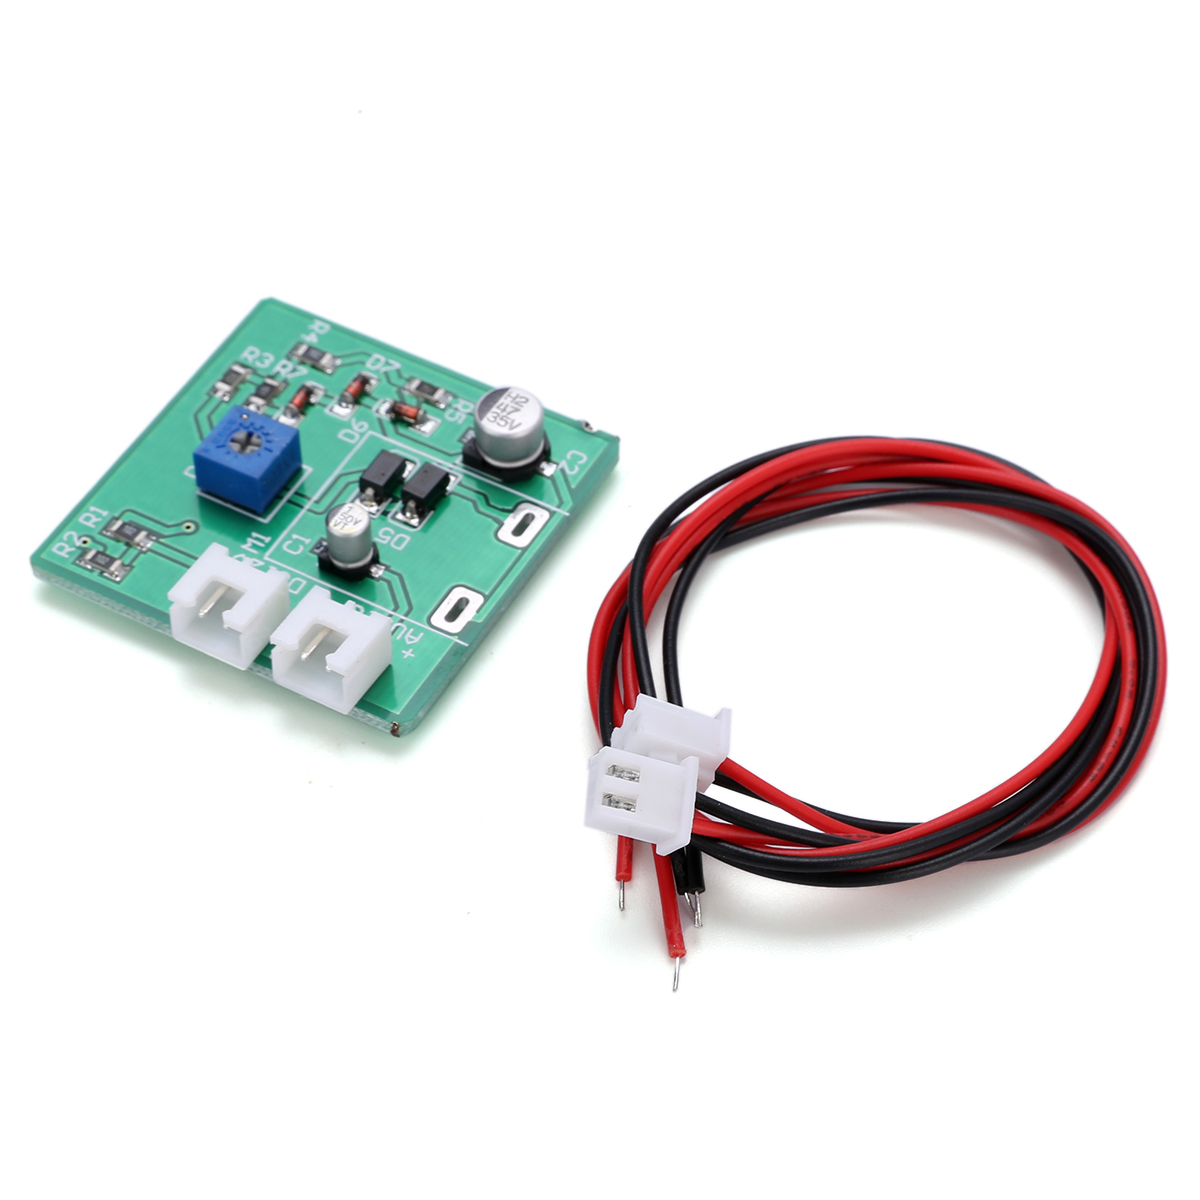 1pc/set  Durable 6-12V Analog Panel VU Meter Audio Level Meter Blue Backlight No Need Driver with 2 cables for power amplifier